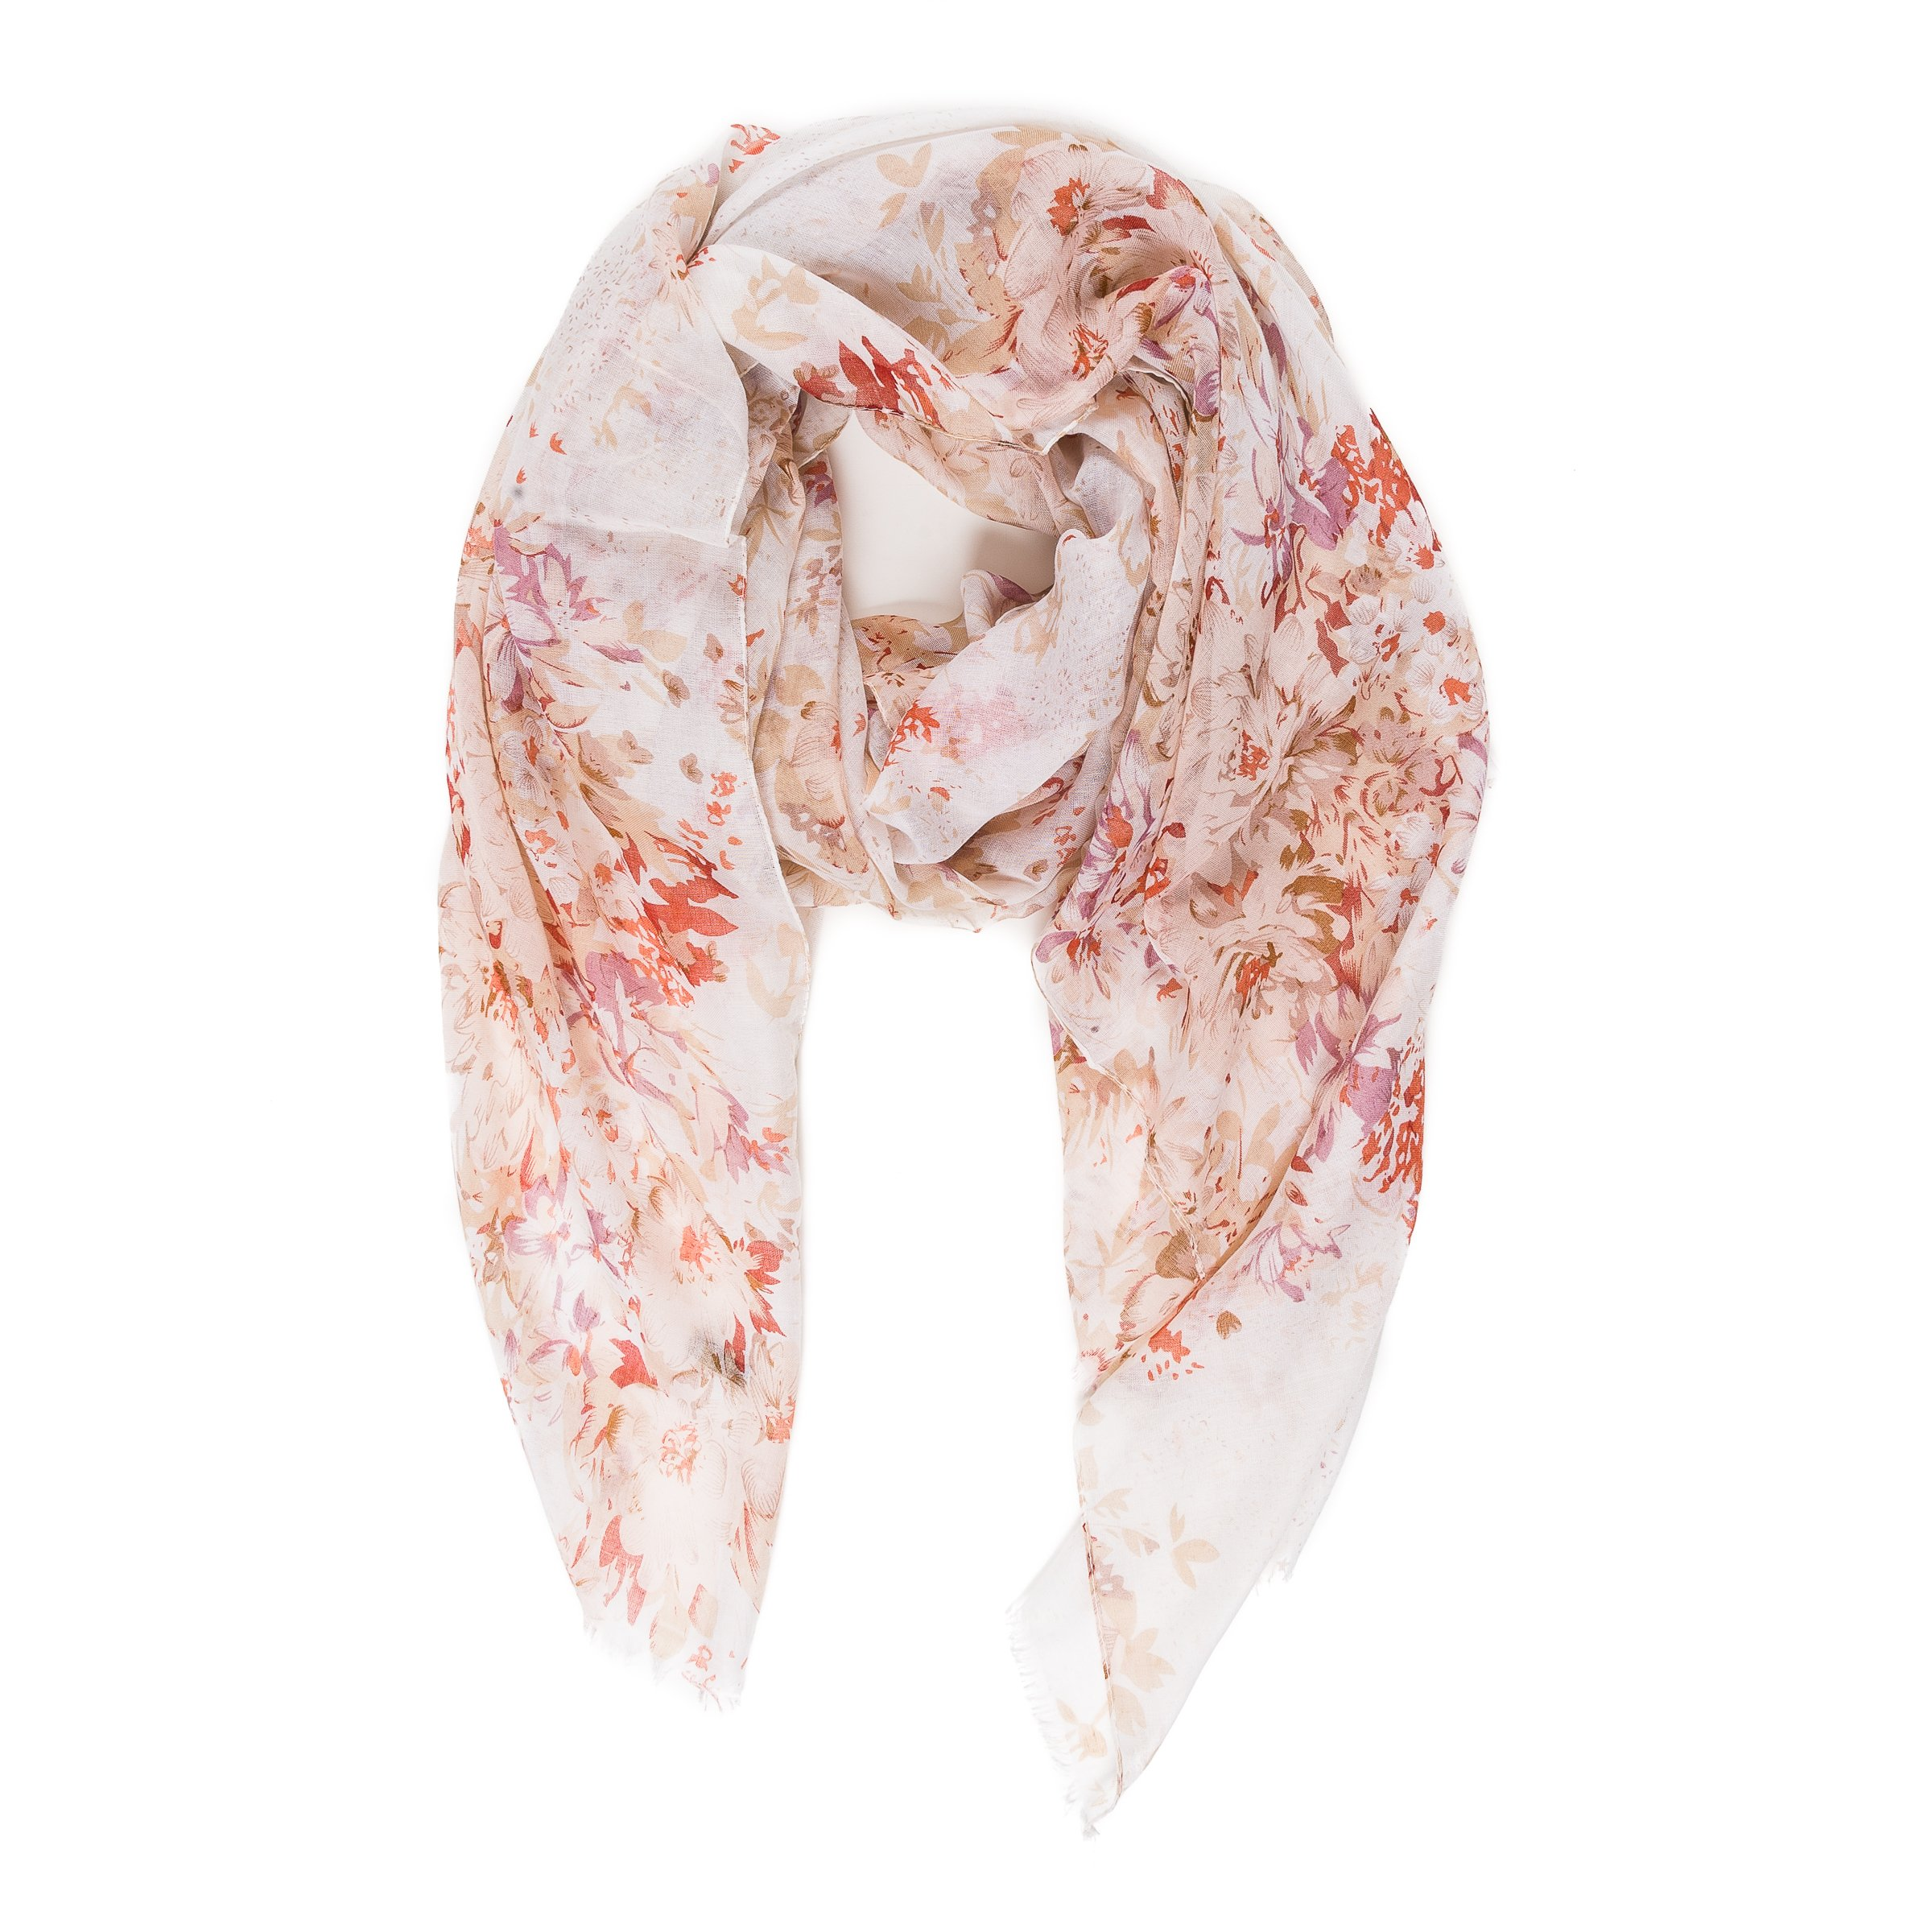 Scarf for Women Lightweight Floral Flower Beige Fashion Fall Winter Scarves Shawl Wraps by Melifluos (P077-15)